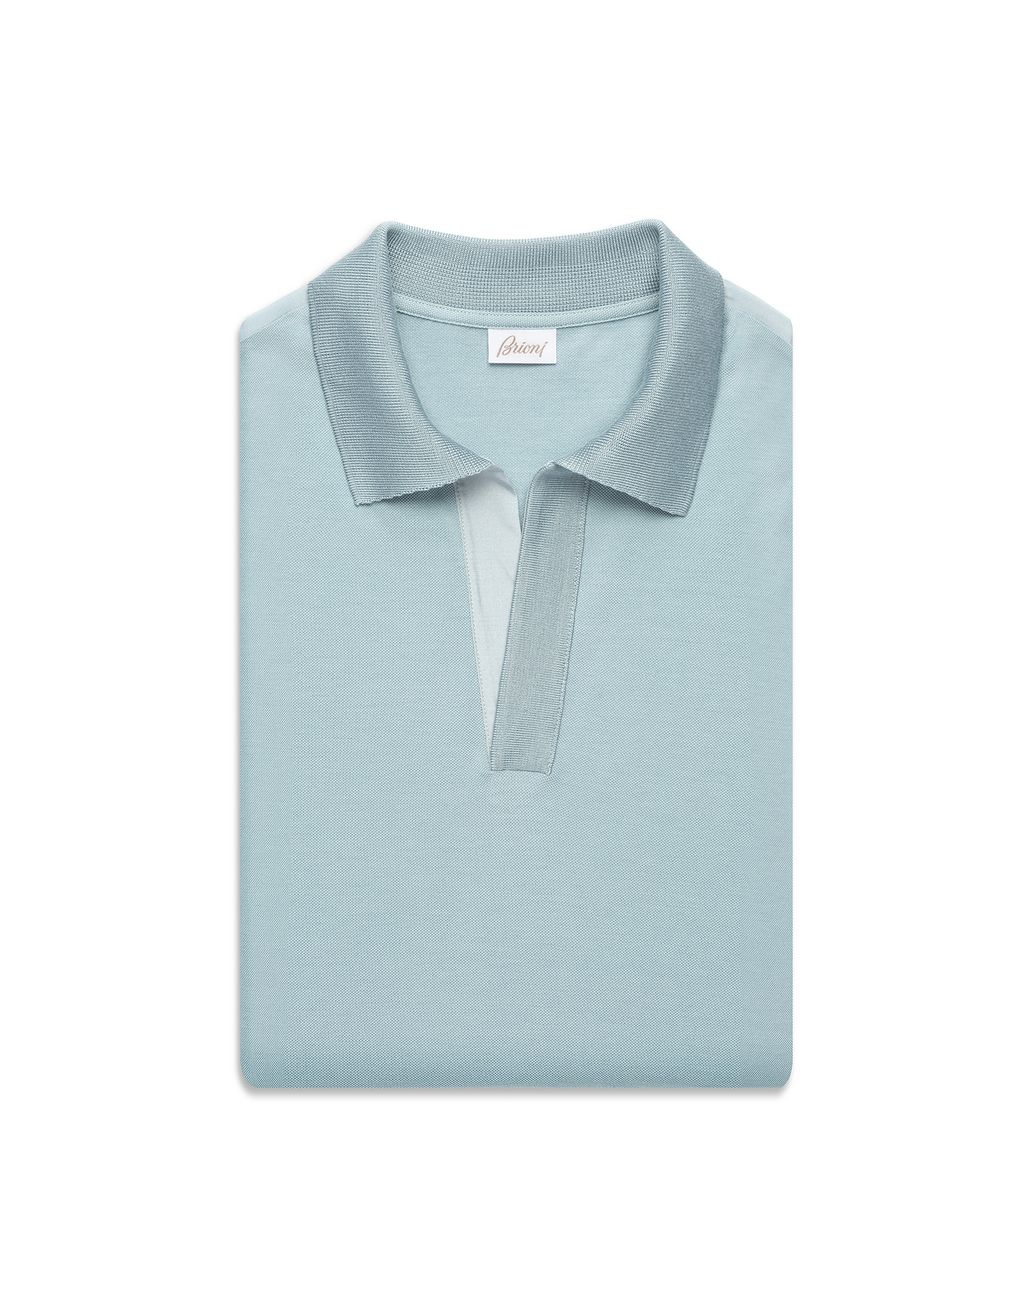 BRIONI Light Blue Buttonless Piquet Polo Shirt T-Shirts & Polos Man e